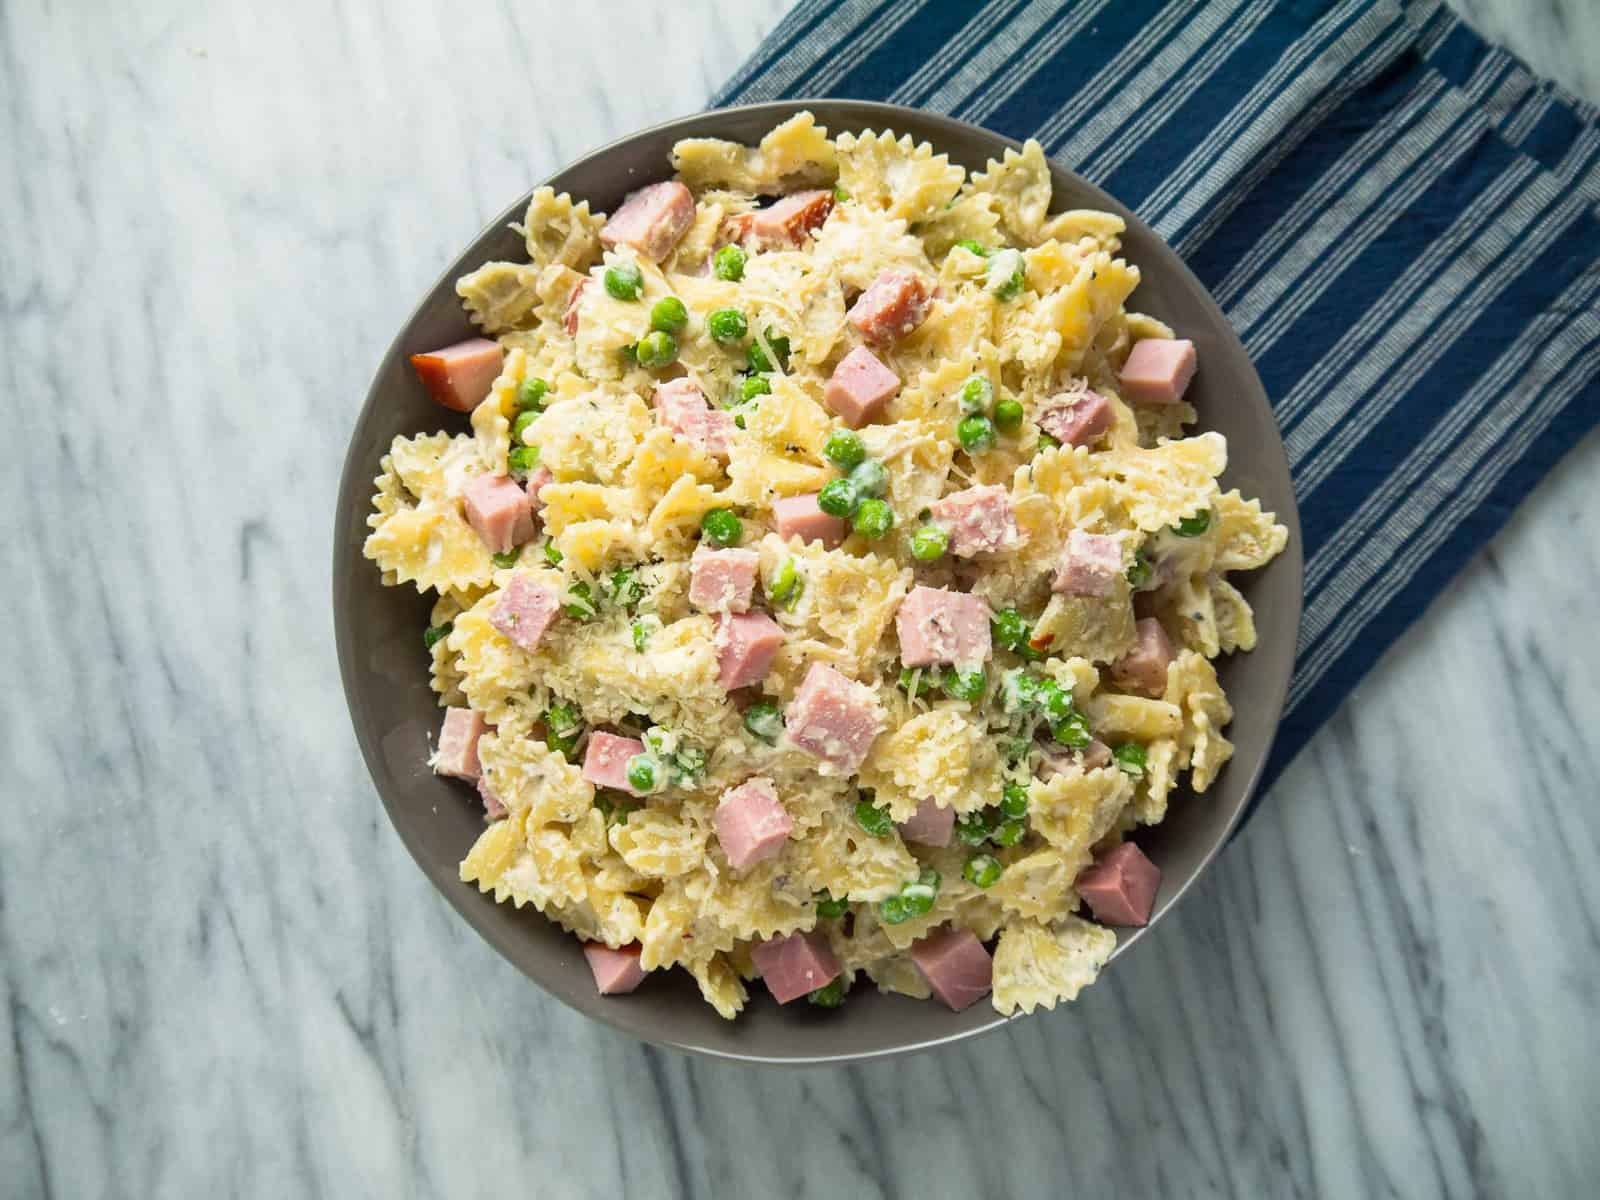 15-Minute Bowties with Ham, Peas and Ricotta